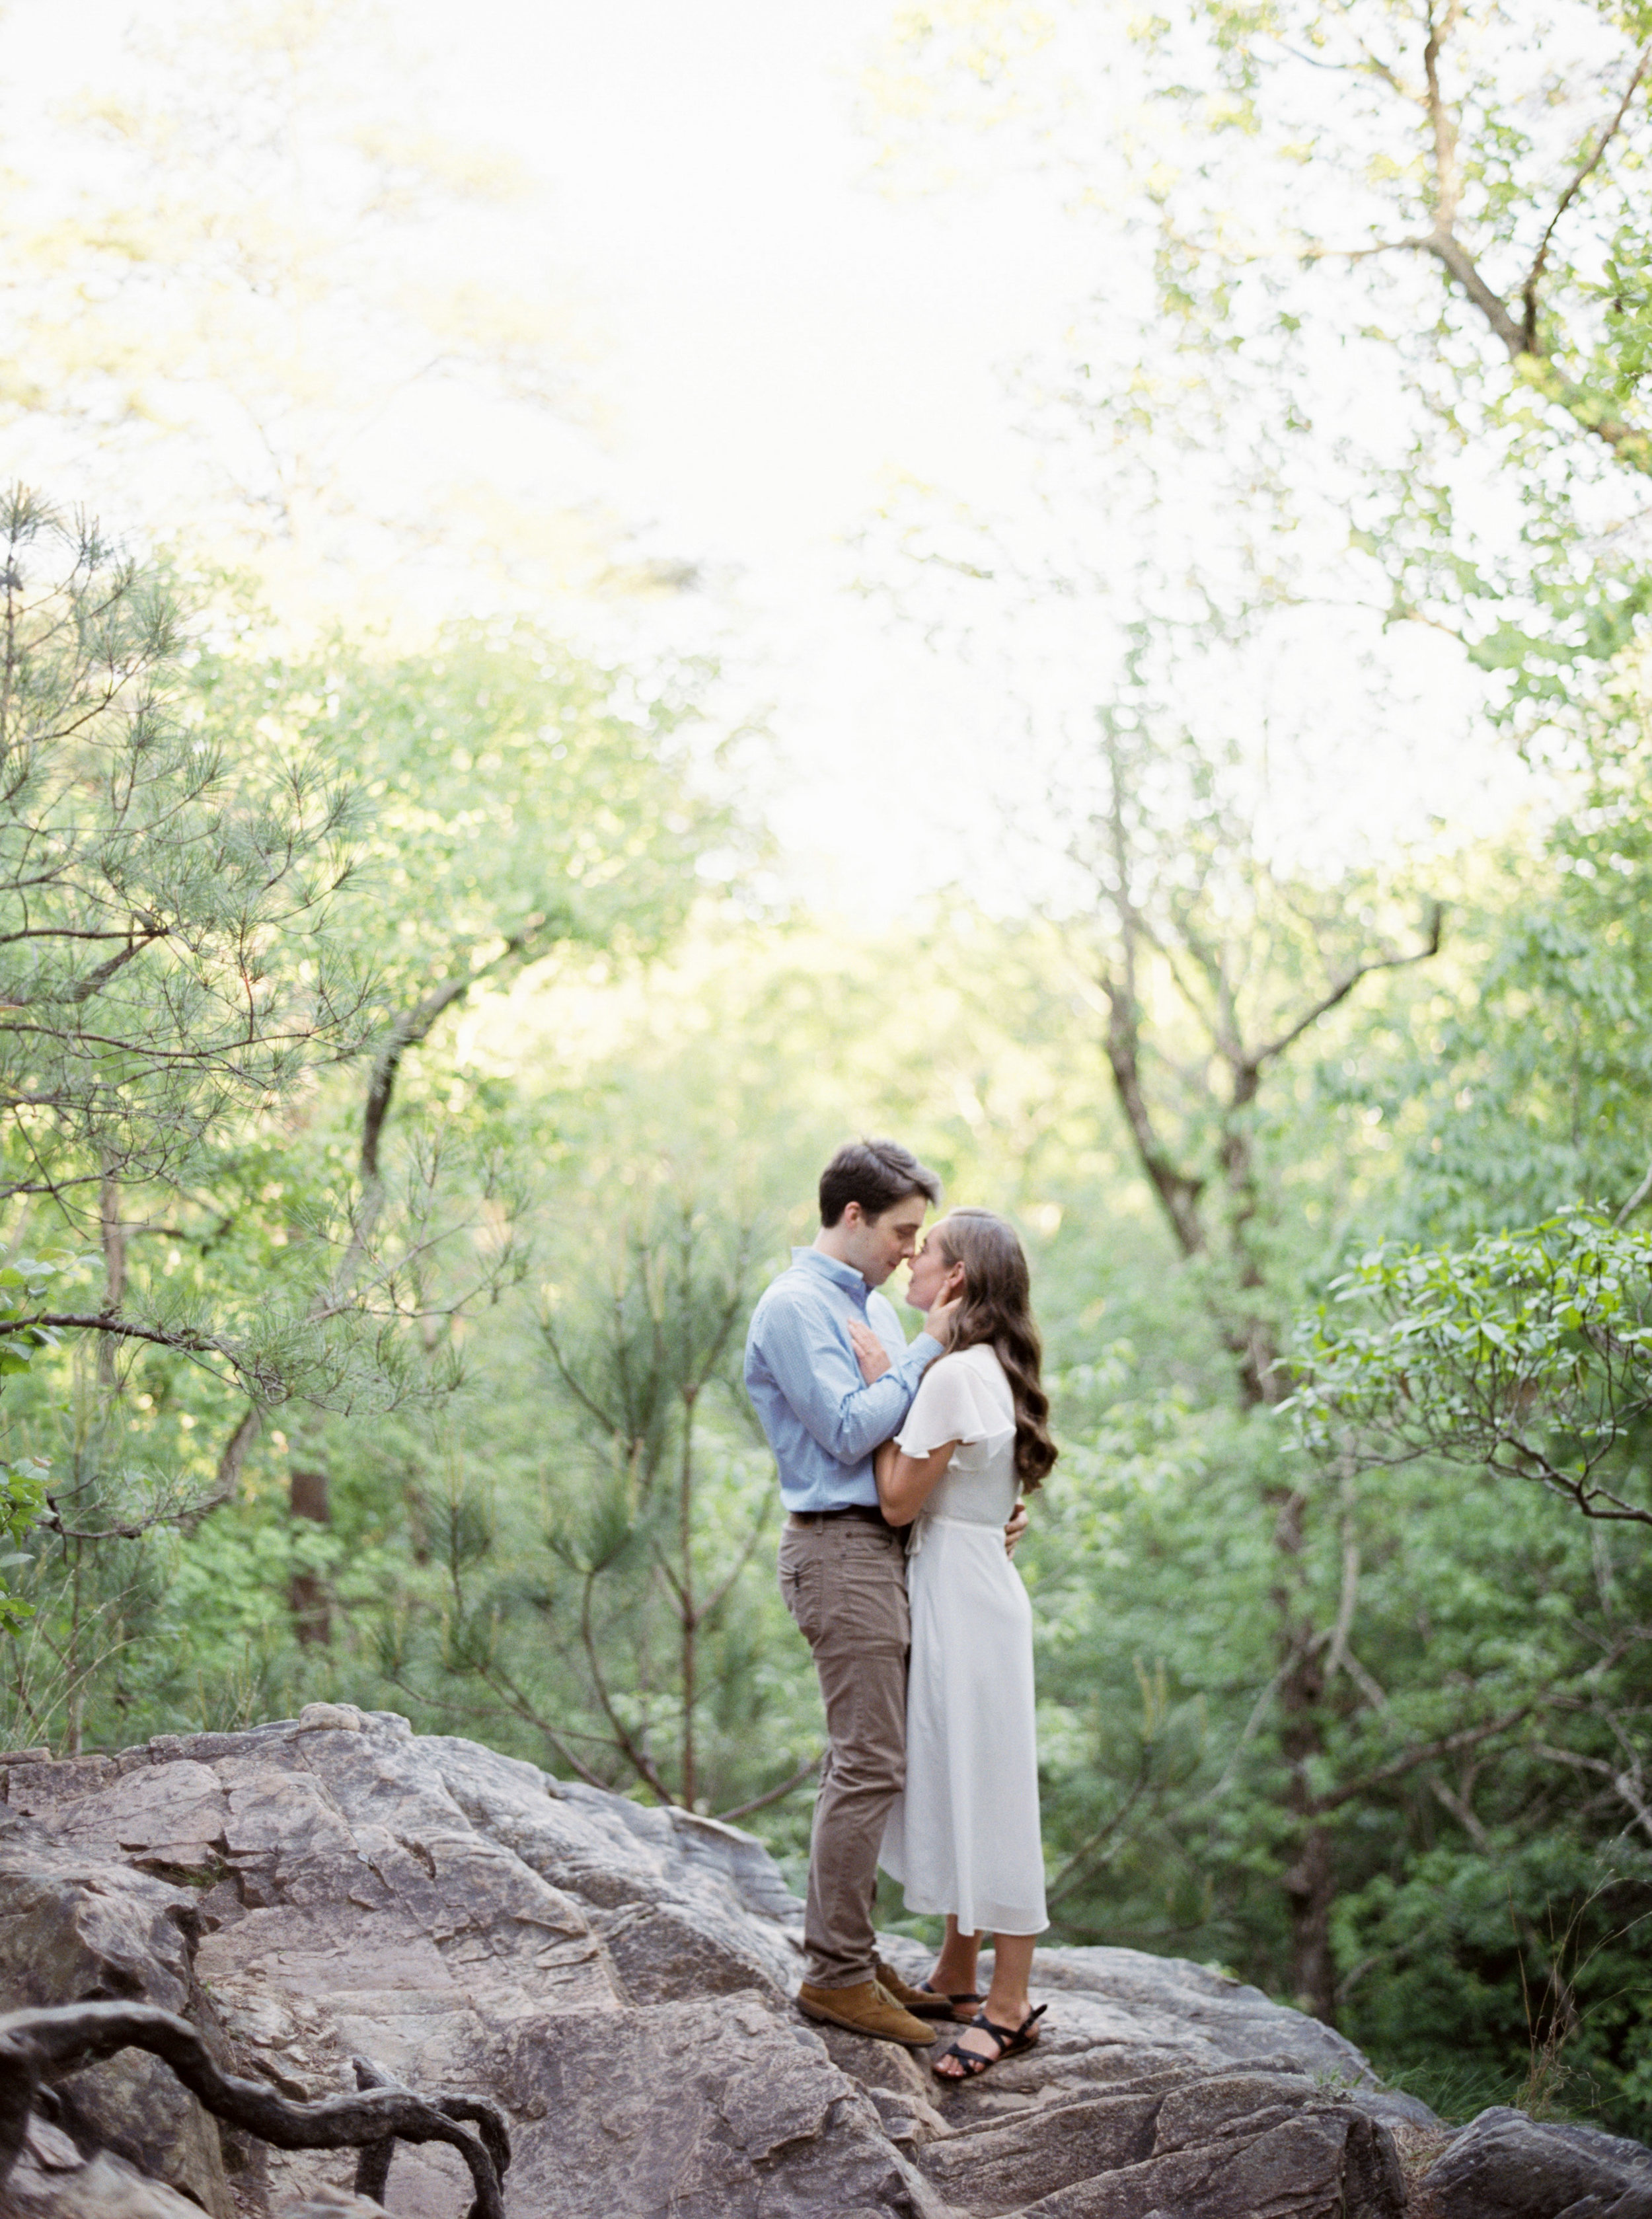 Oak Mountain State Park, Peavine Falls, Birmingham overlooks, Meghan Murphy Photography, Birmingham Engagement Session, Where to take engagement pictures in Birmingham, AL, Alabama wedding photographer, Alabama film wedding photographer, Birmingham film wedding photographer, Birmingham wedding photographer, Birmingham fine art wedding photographer, outfit ideas for engagement session, authentic engagement photos, romantic engagement photos,